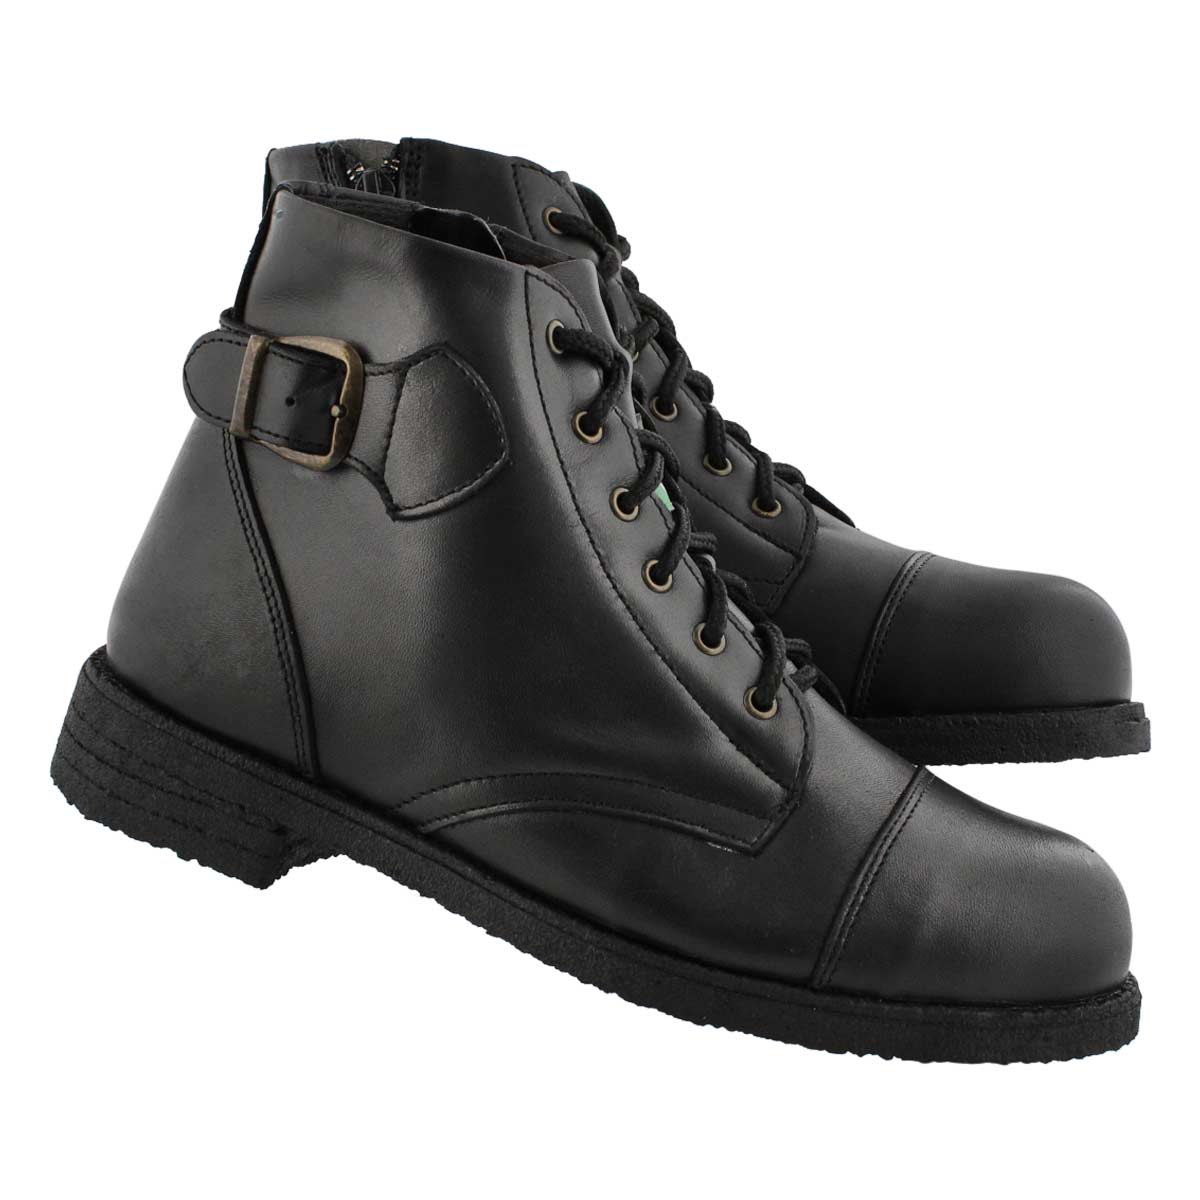 Lds Aviator black CSA lace up boot